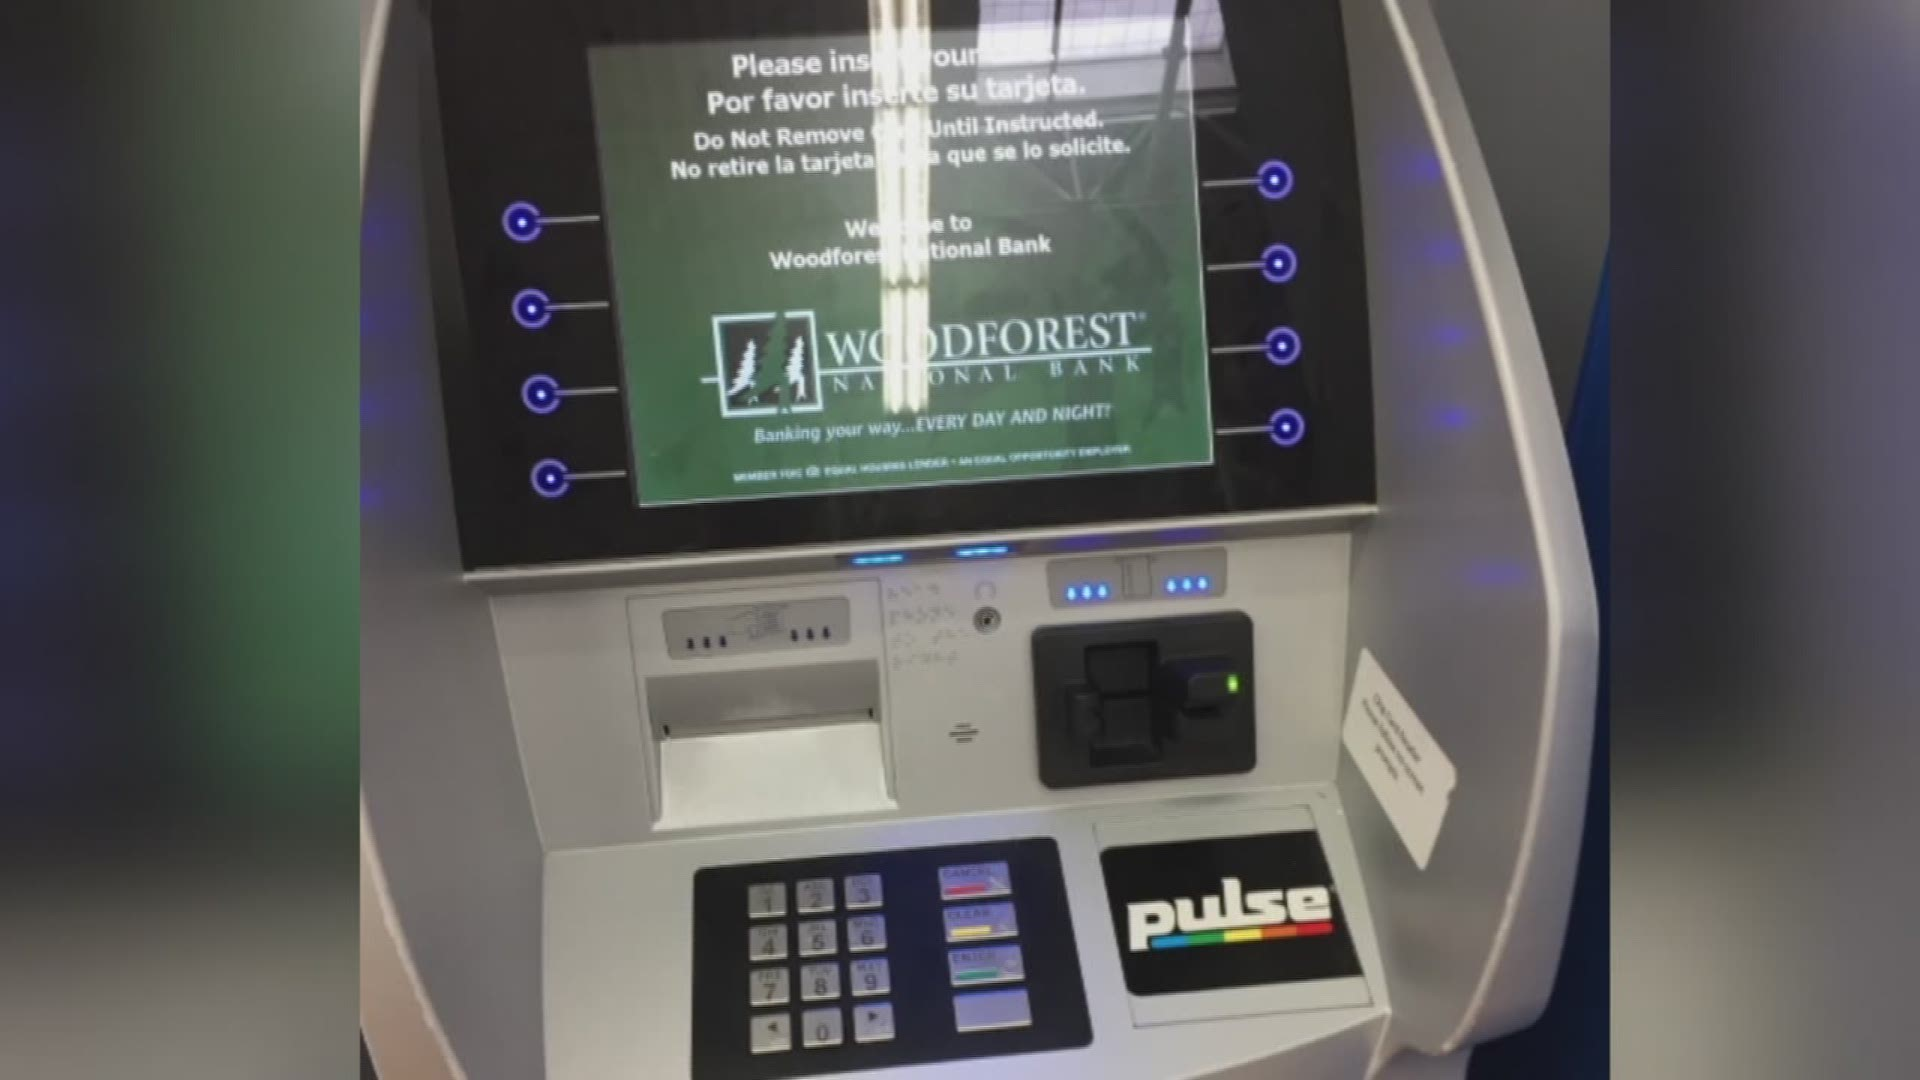 ATM takes man's money he wasn't depositing | wfaa.com